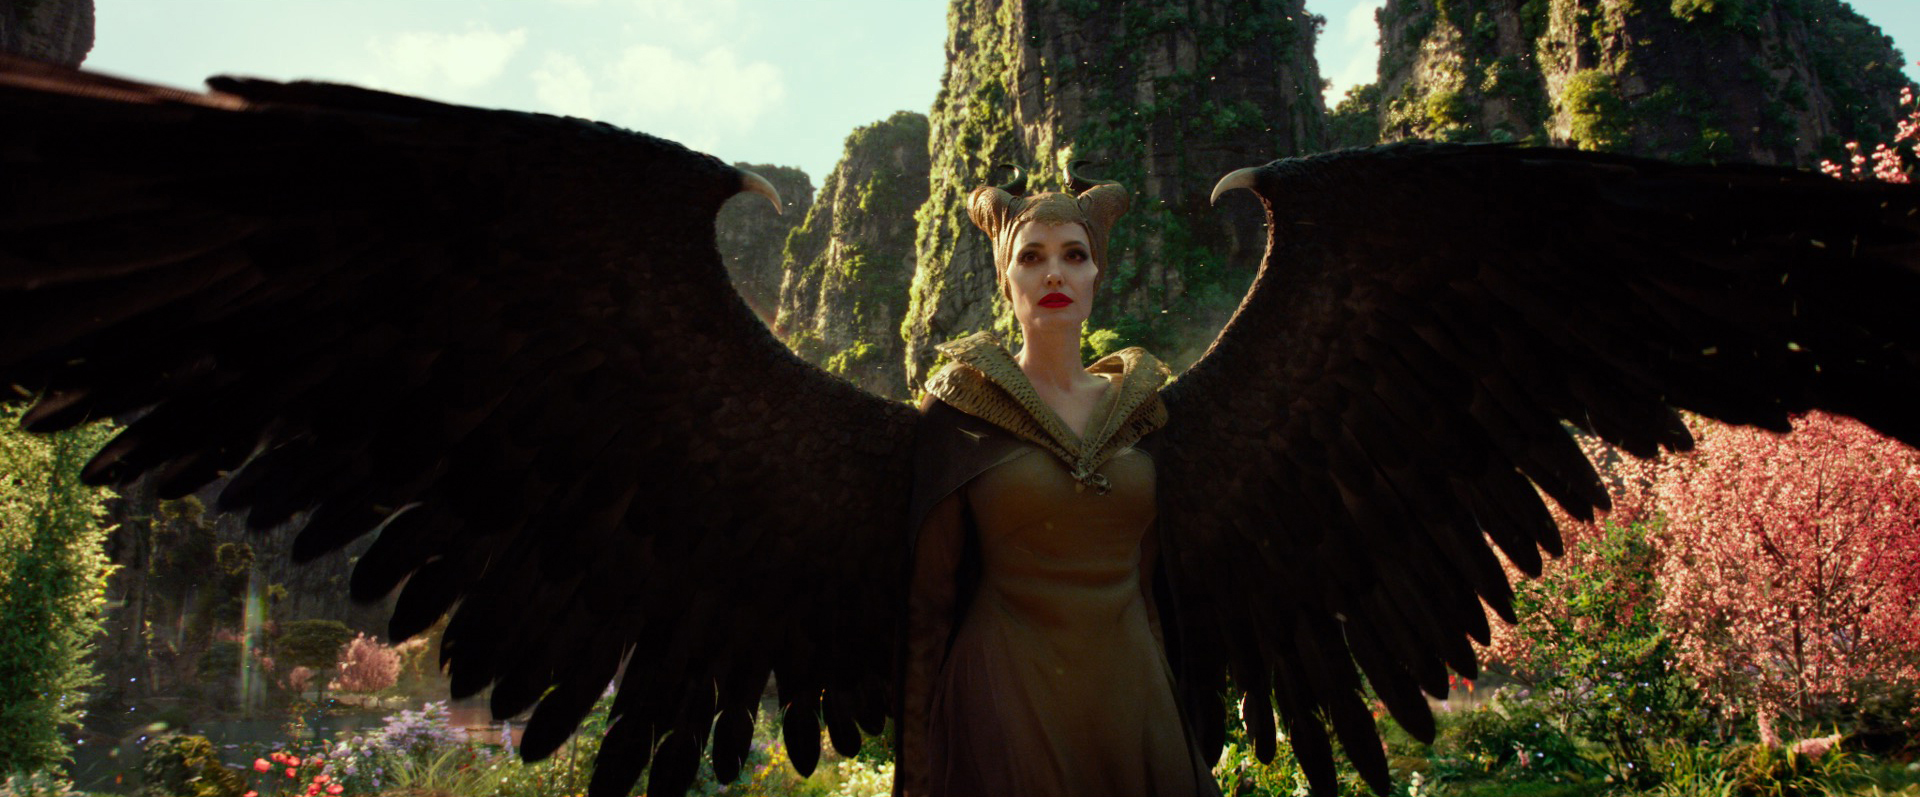 Maleficent 2 Signora del Male Angelina Jolie